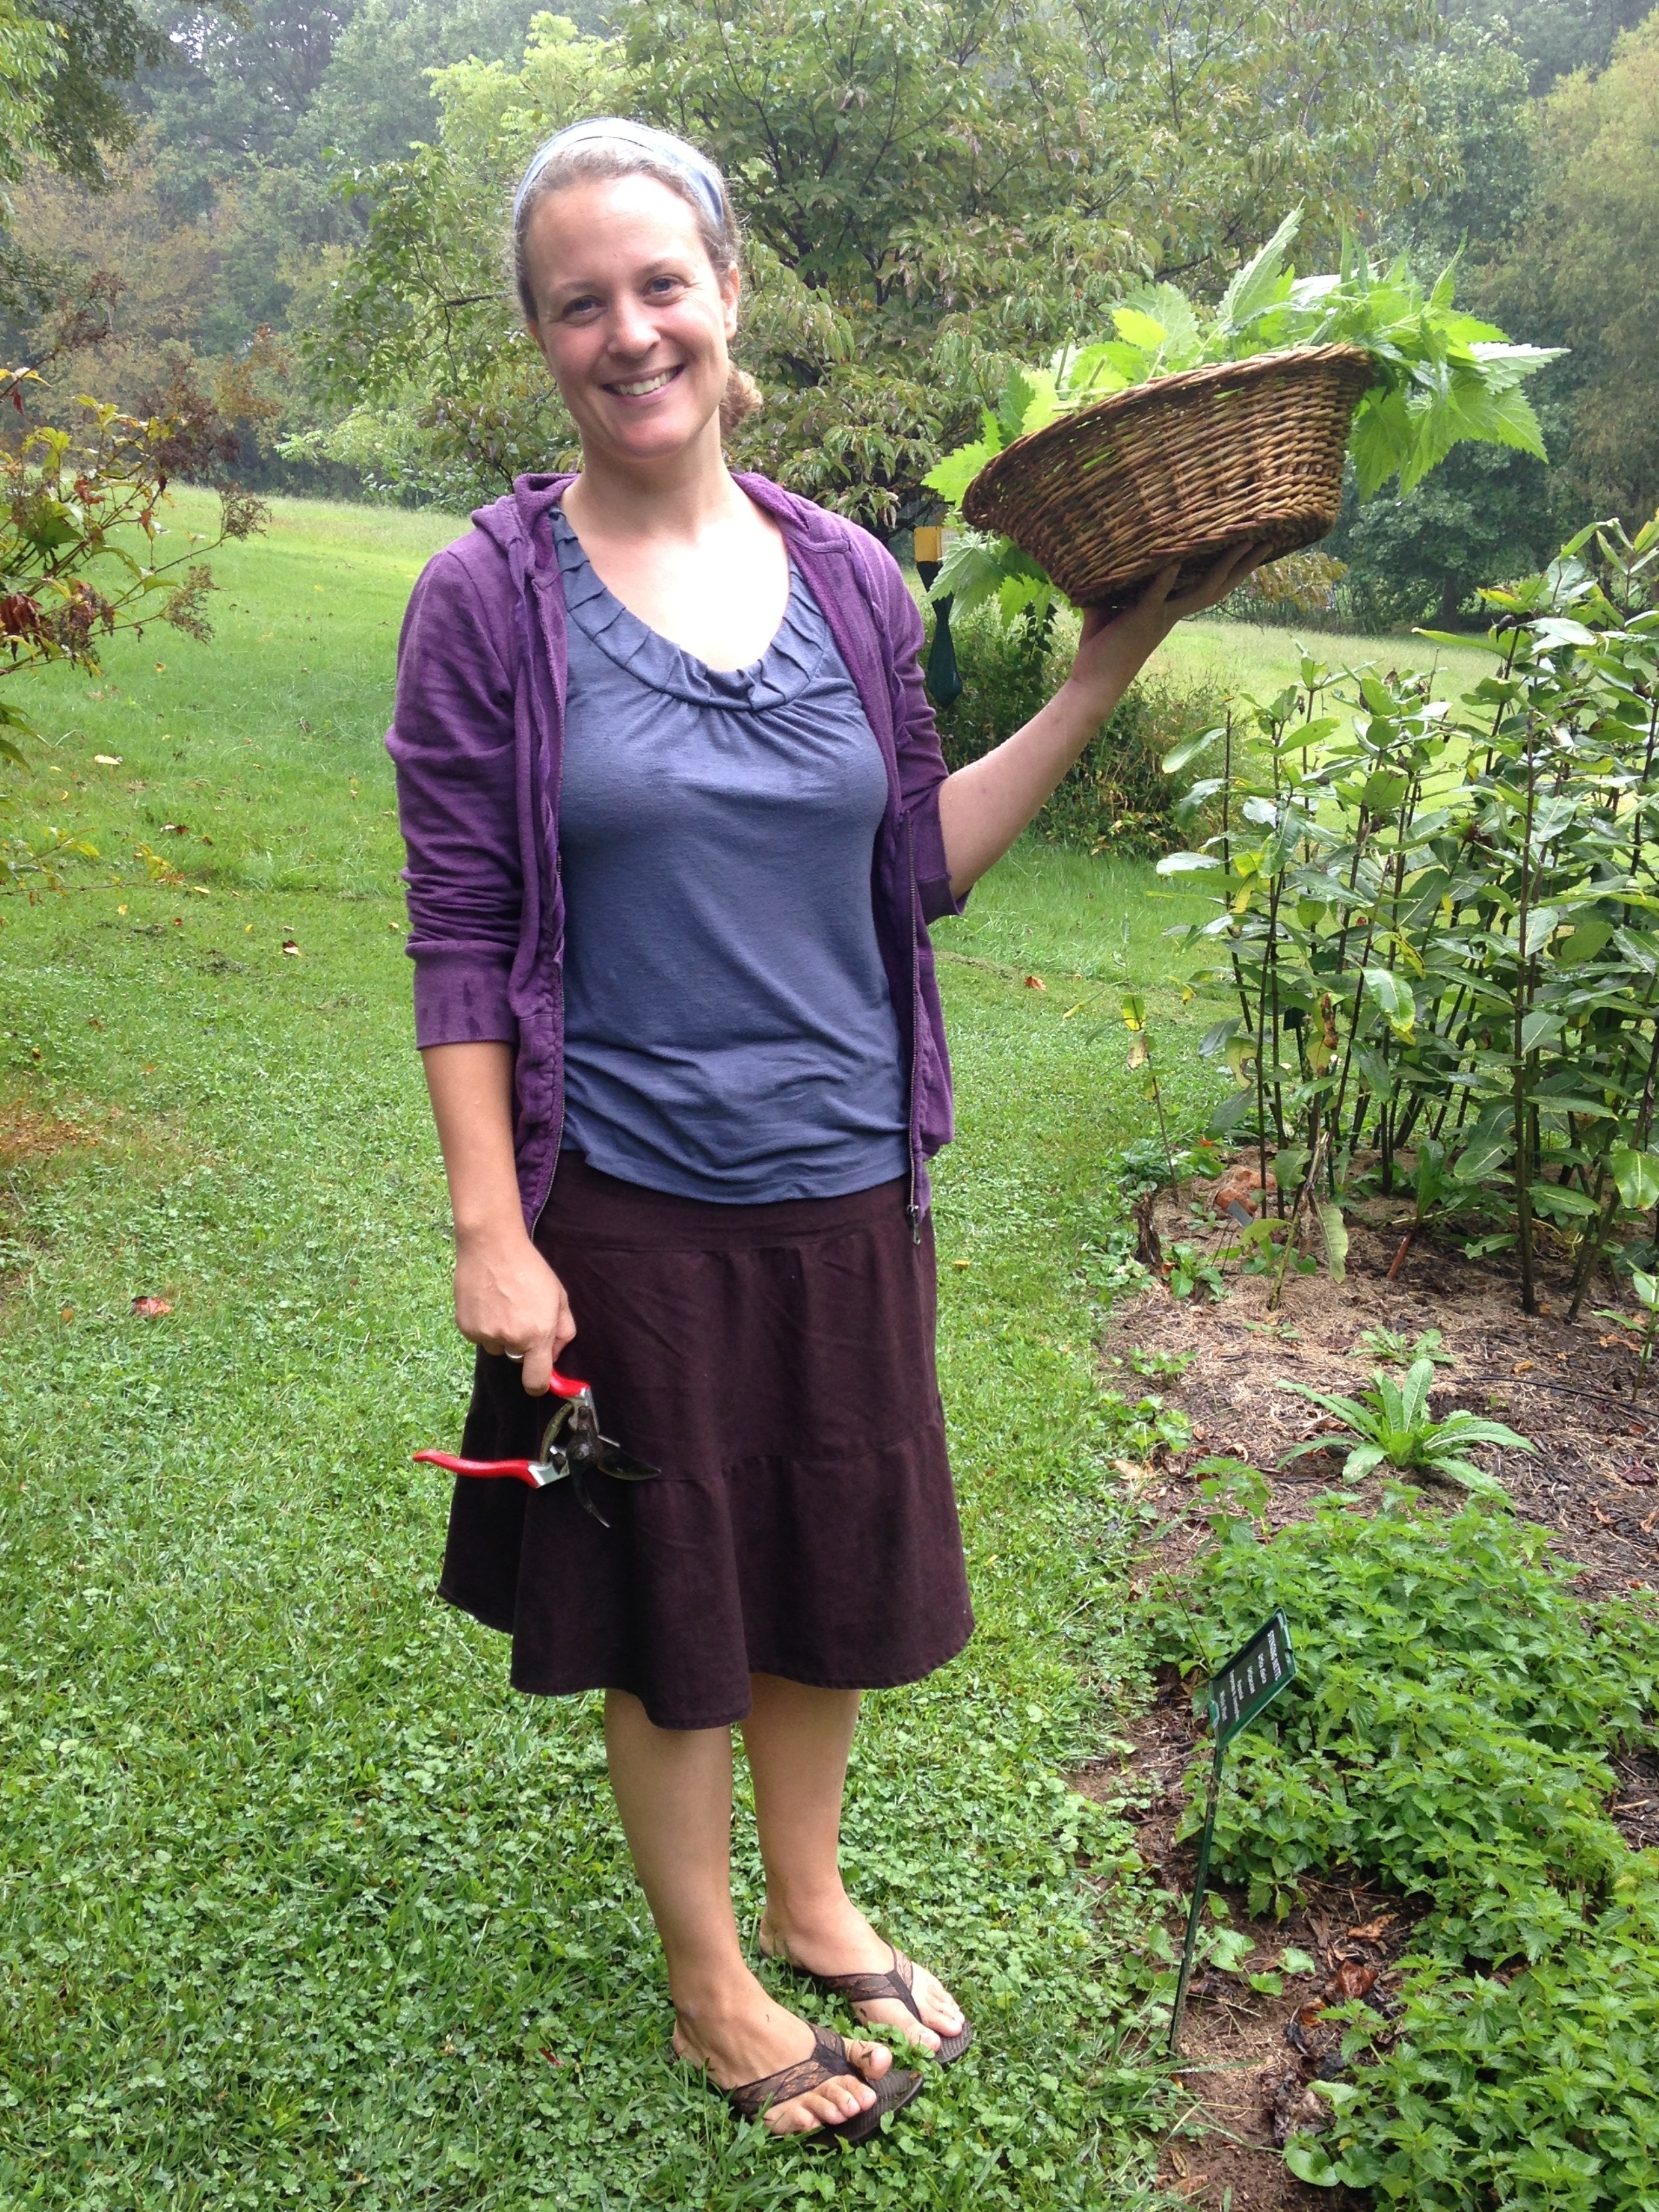 Camille harvesting nettles in the rain